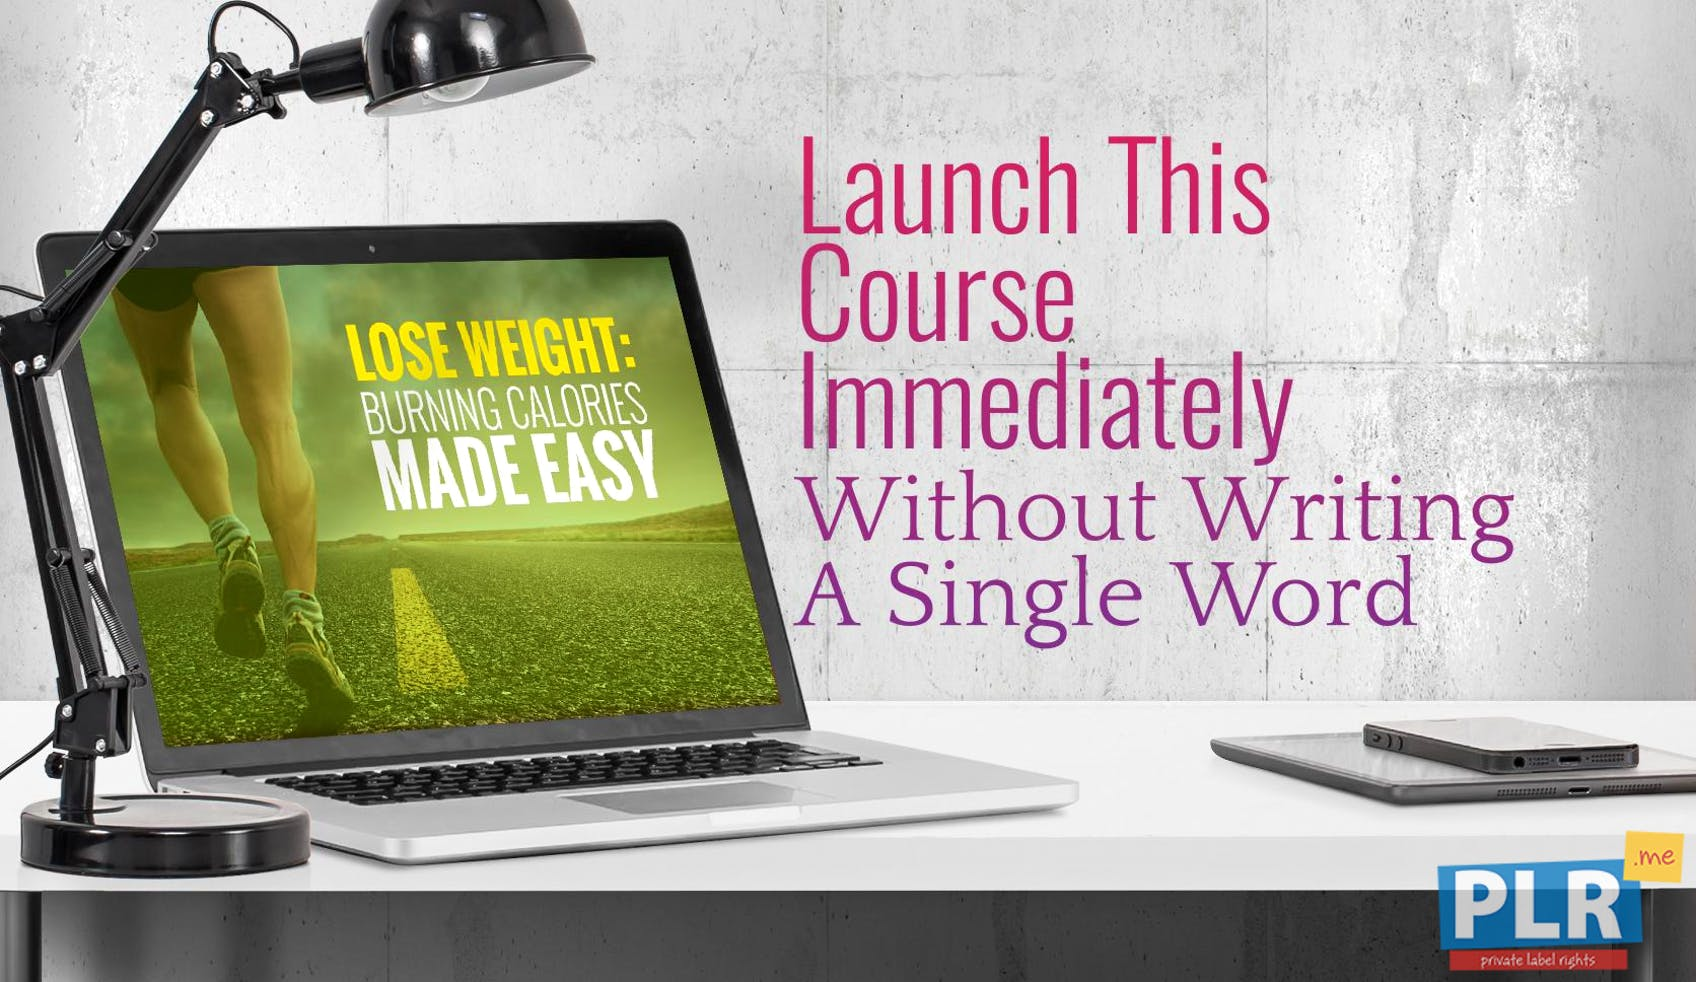 Lose Weight: Burning Calories Made Easy